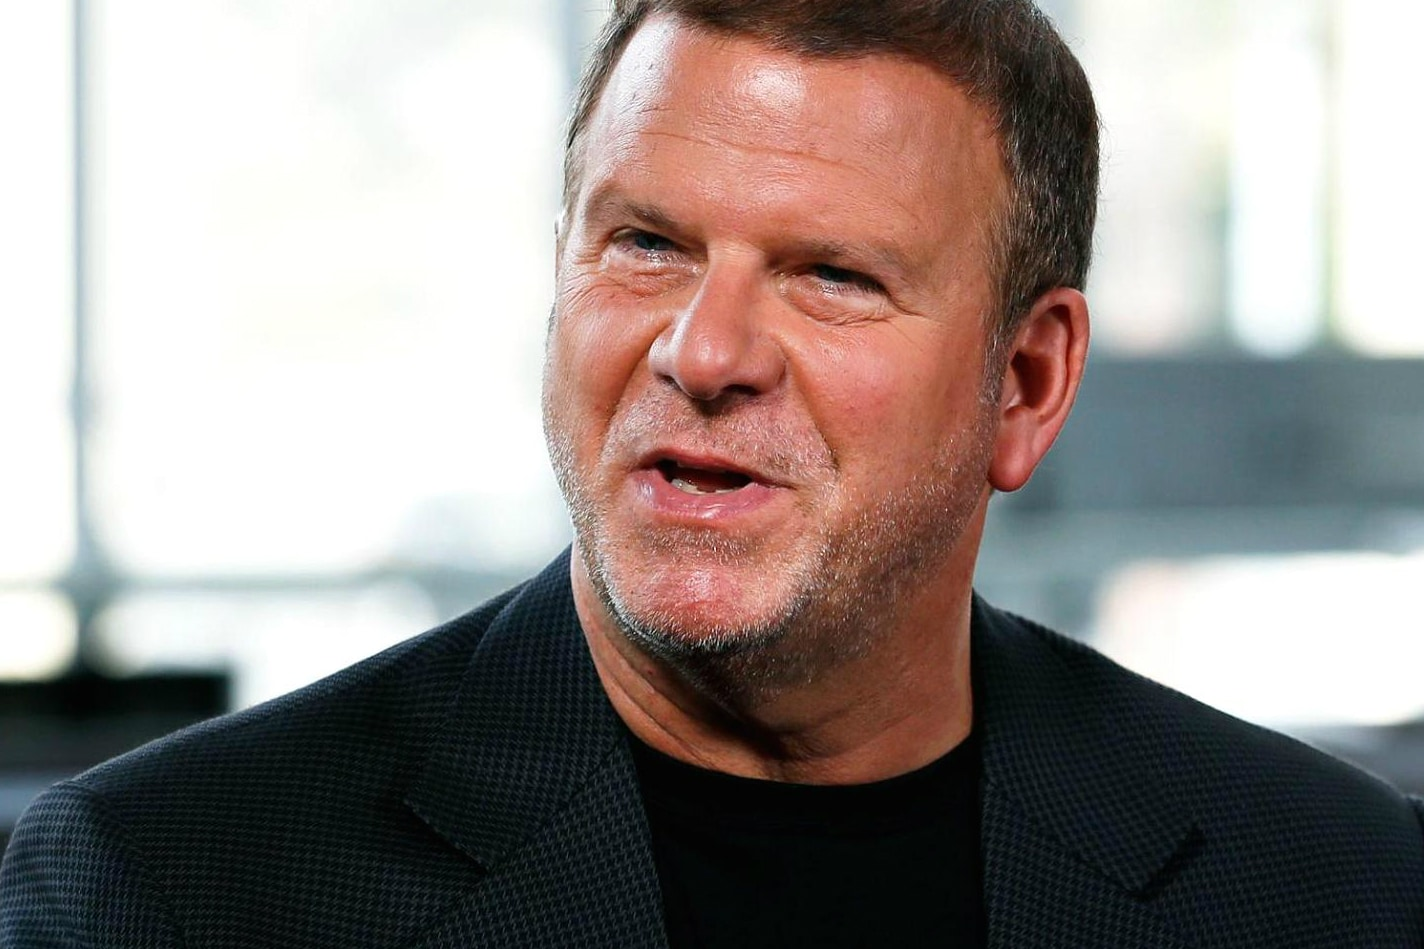 Houston franchise sold to billionaire Tilman Fertitta for record price